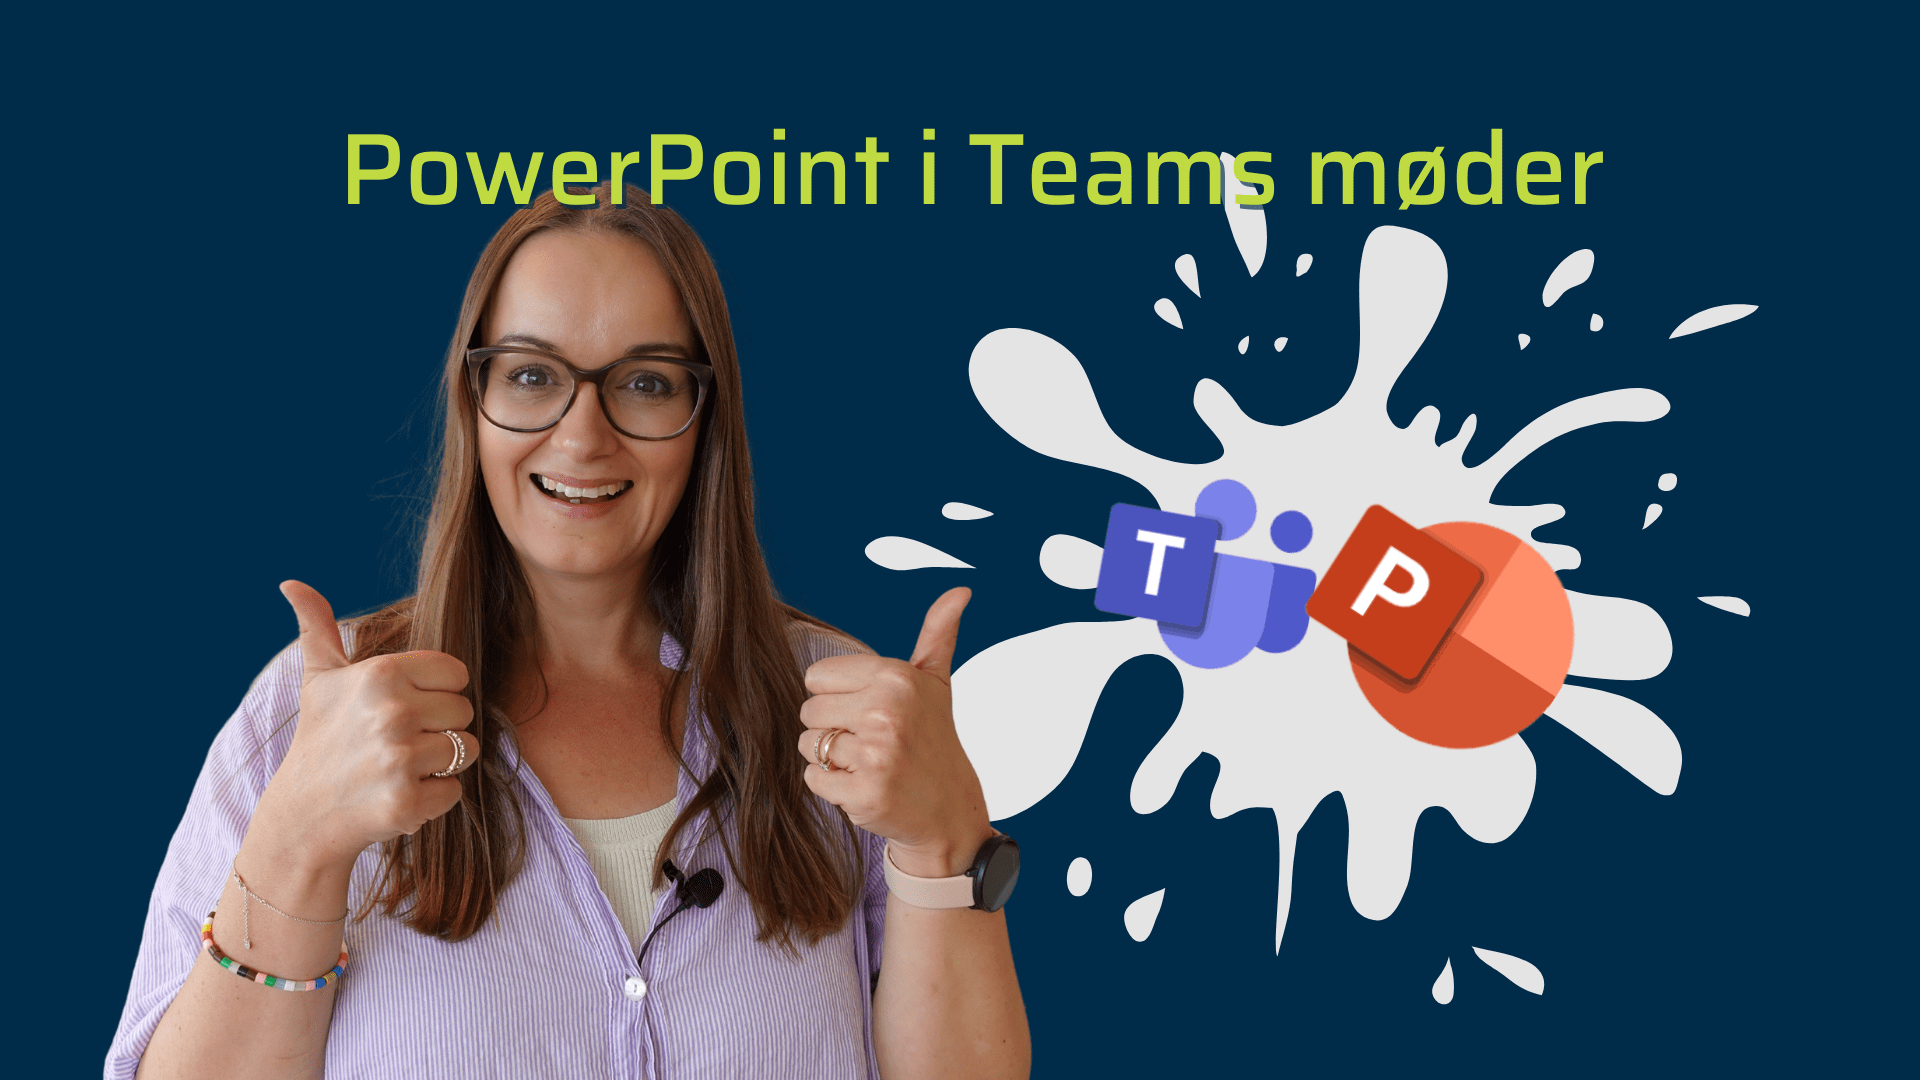 Powerpoint live i Teams